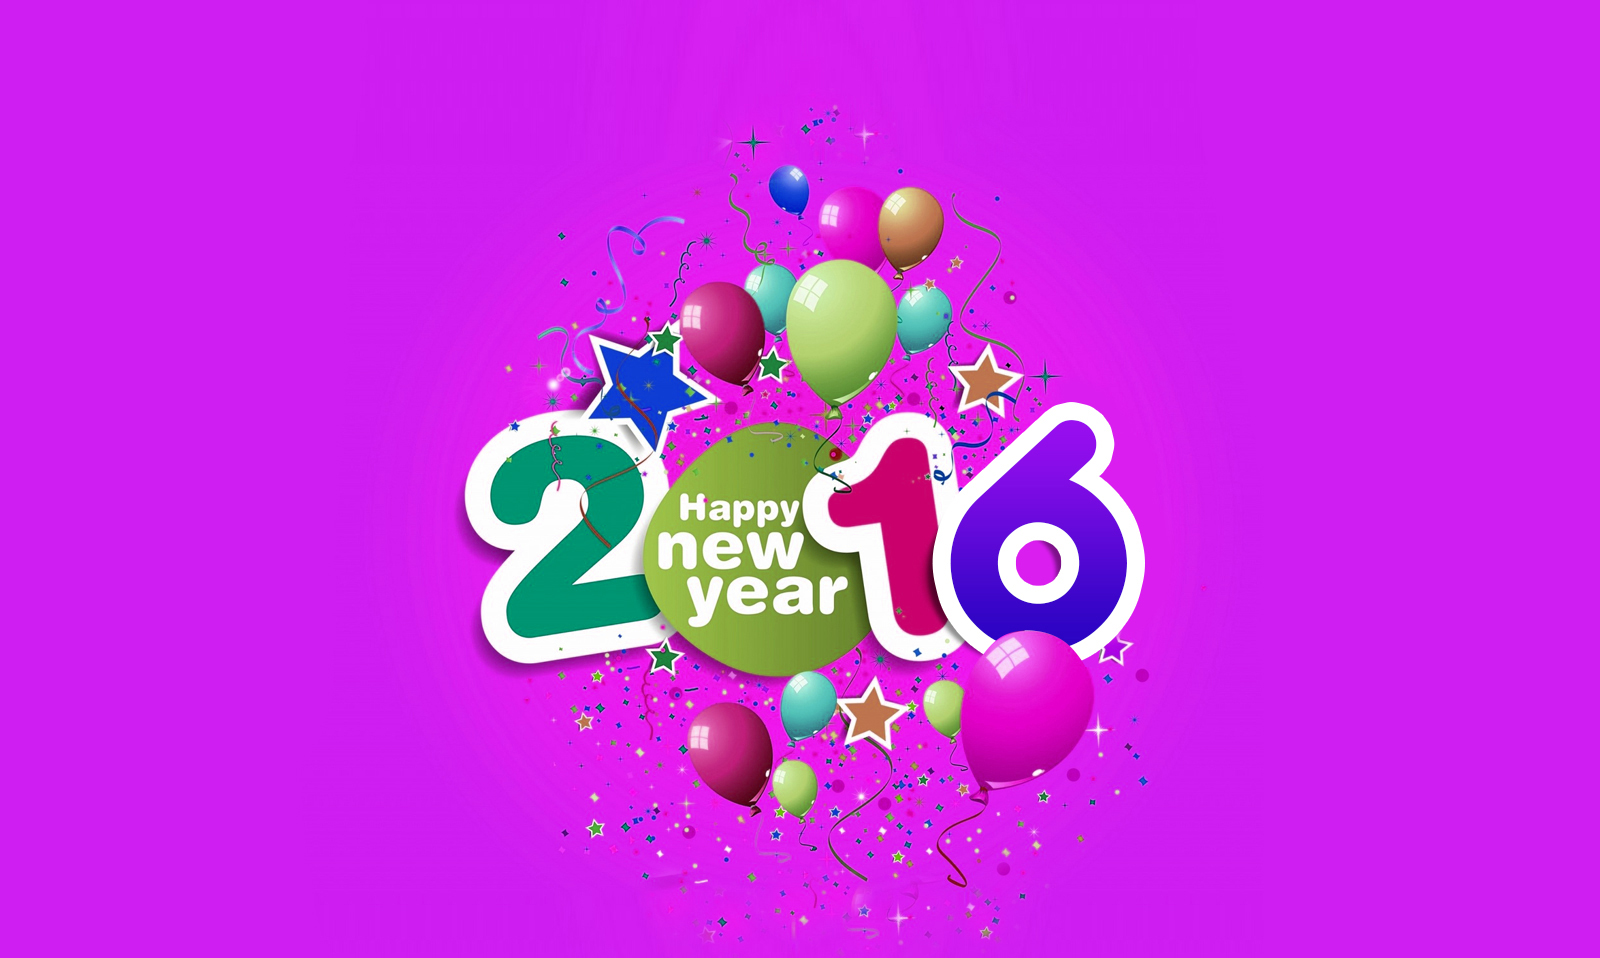 Happy New year Wallpaper HD Download (1)